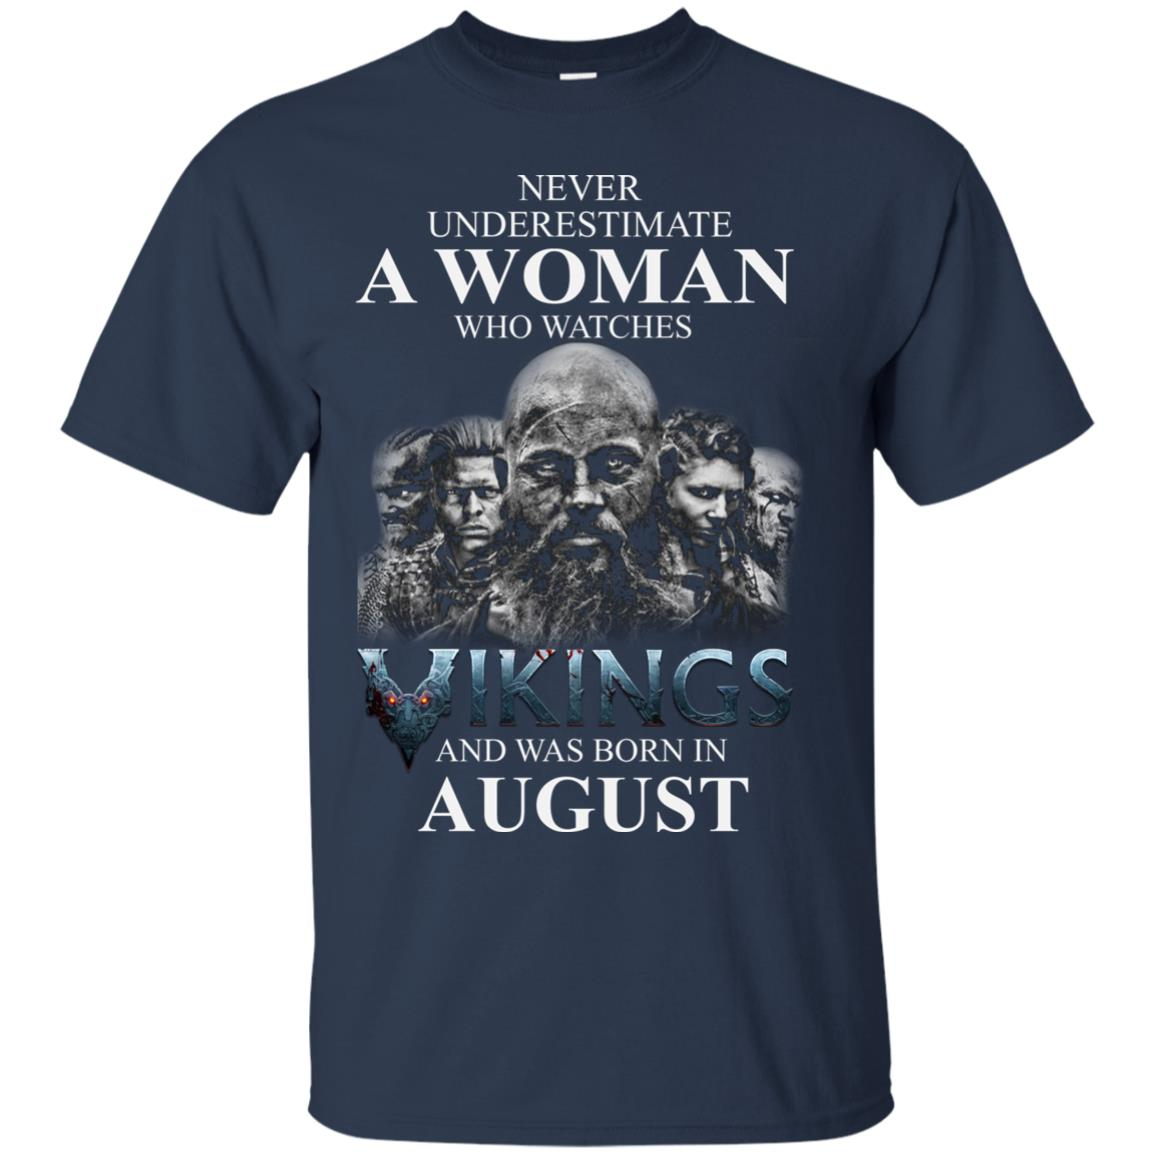 image 1268 - Never Underestimate A woman who watches Vikings and was born in August shirt